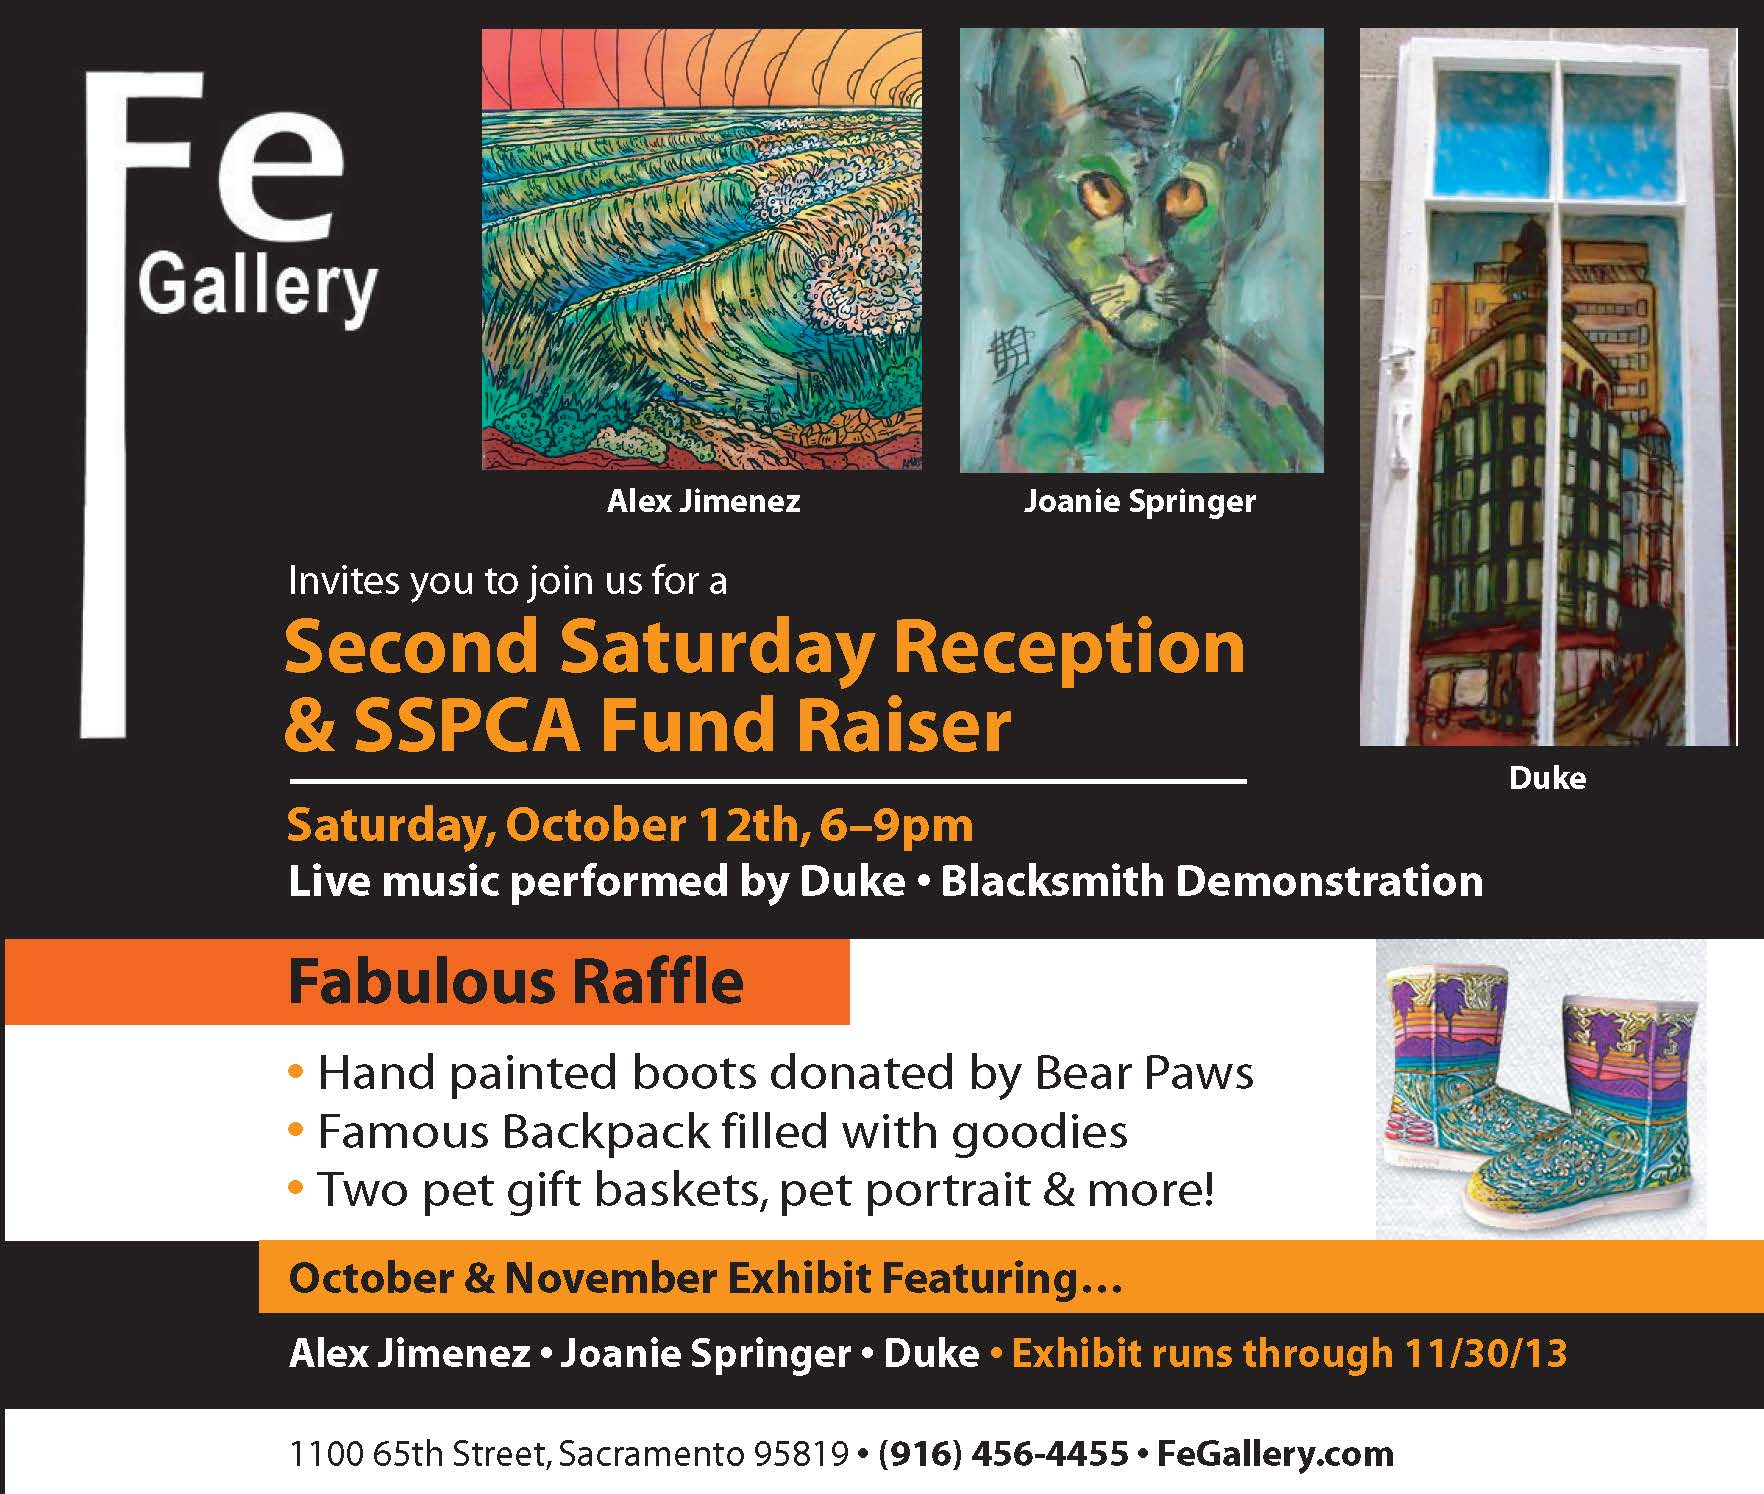 FE Gallery | SPCA benefit event